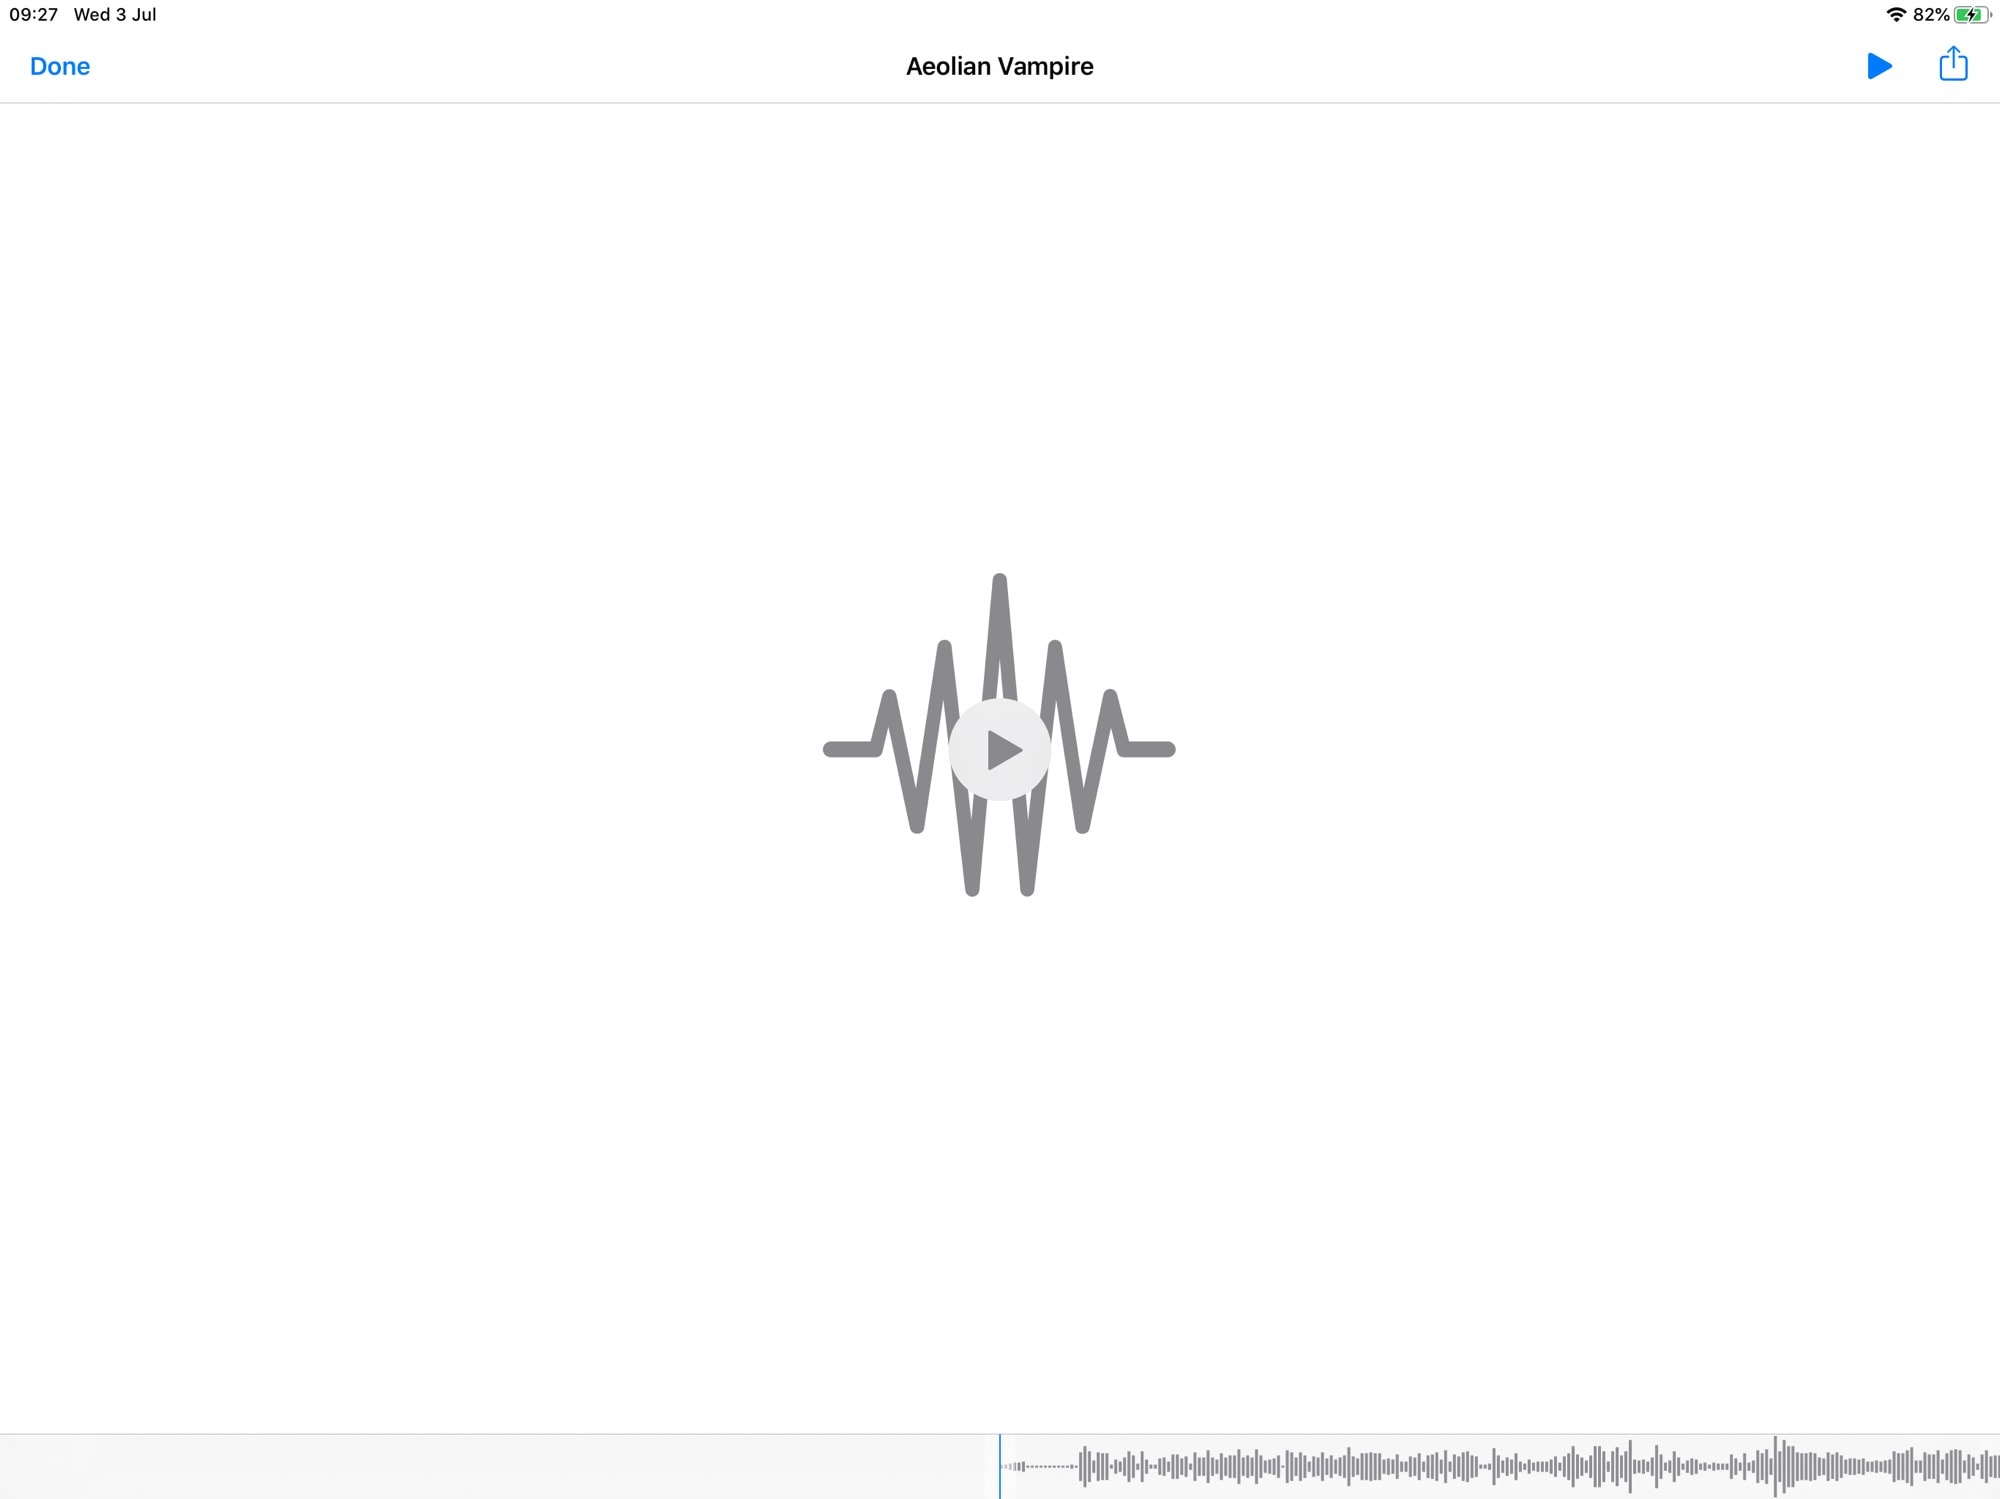 The iOS 13 Files media player, with scrubbable waveform.